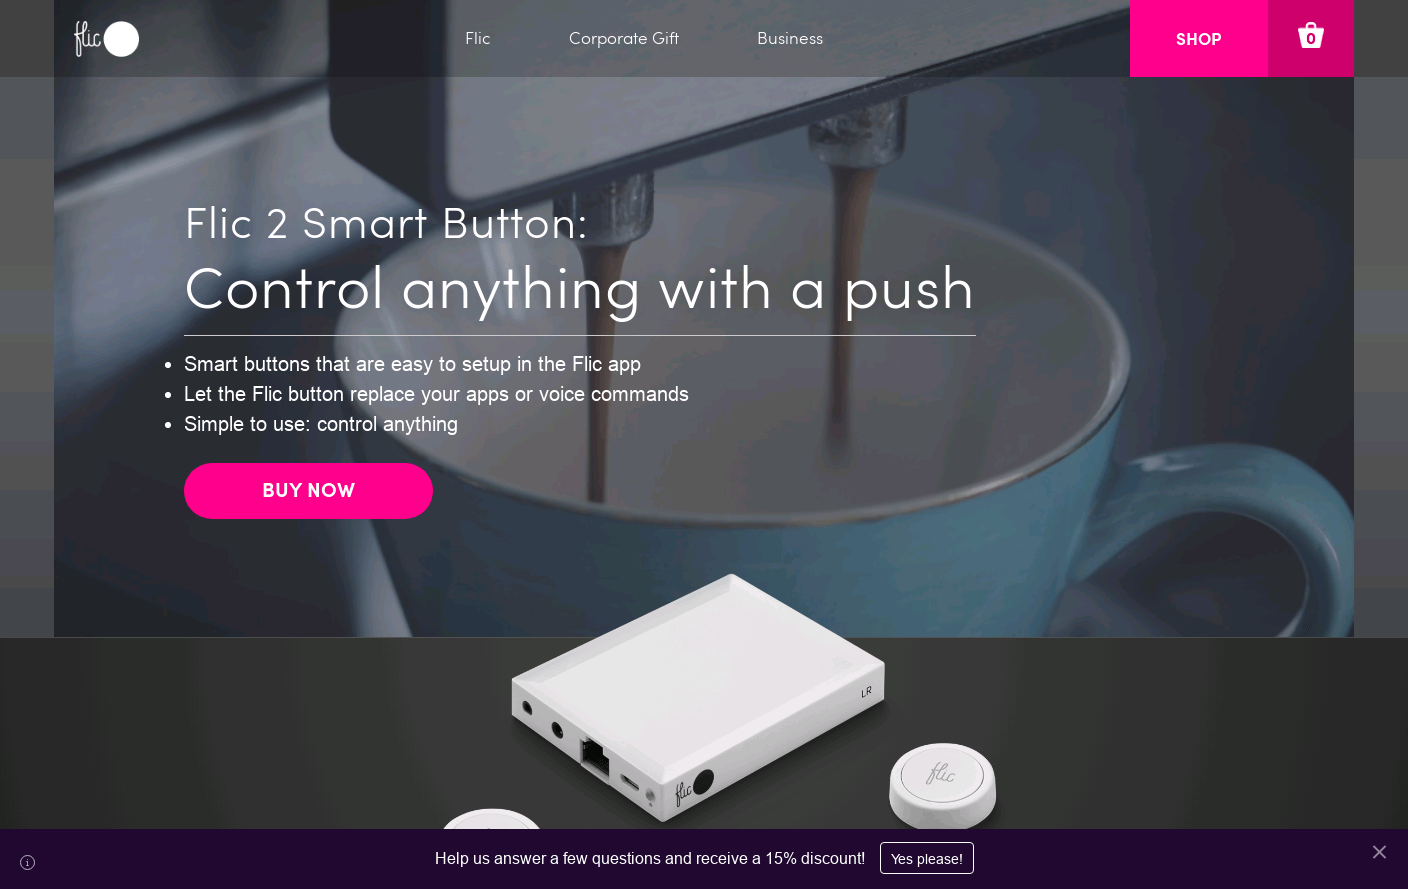 Flic - Smart Bluetooth Button - Pure simplicity at the click of a button.